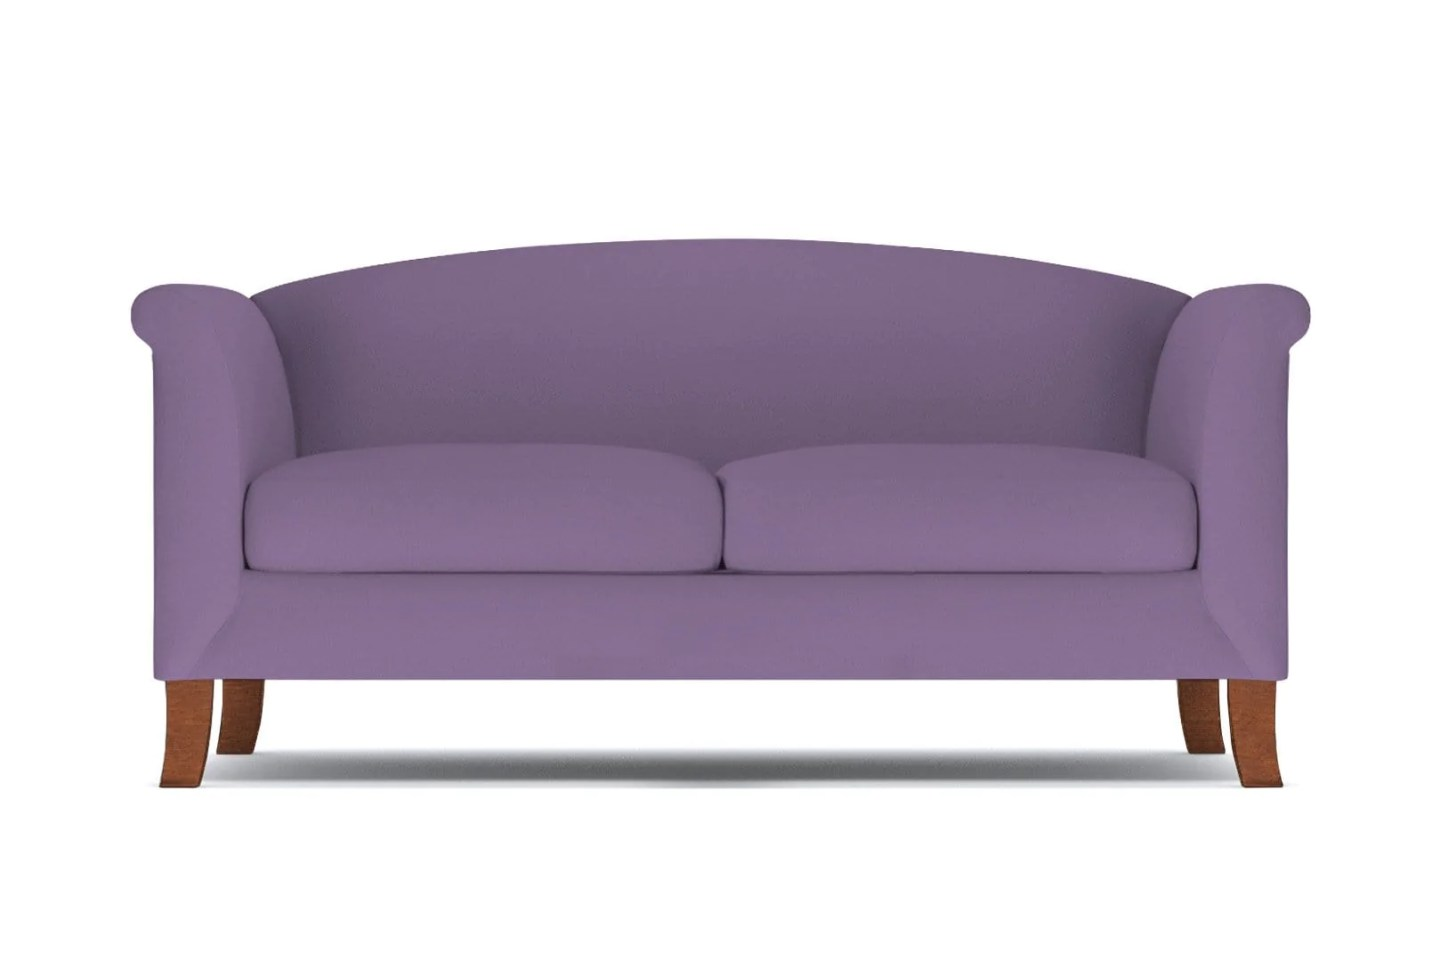 Albright Loveseat - Purple Velvet -  Small Space Modern Couch Made in the USA - Sold by Apt2B